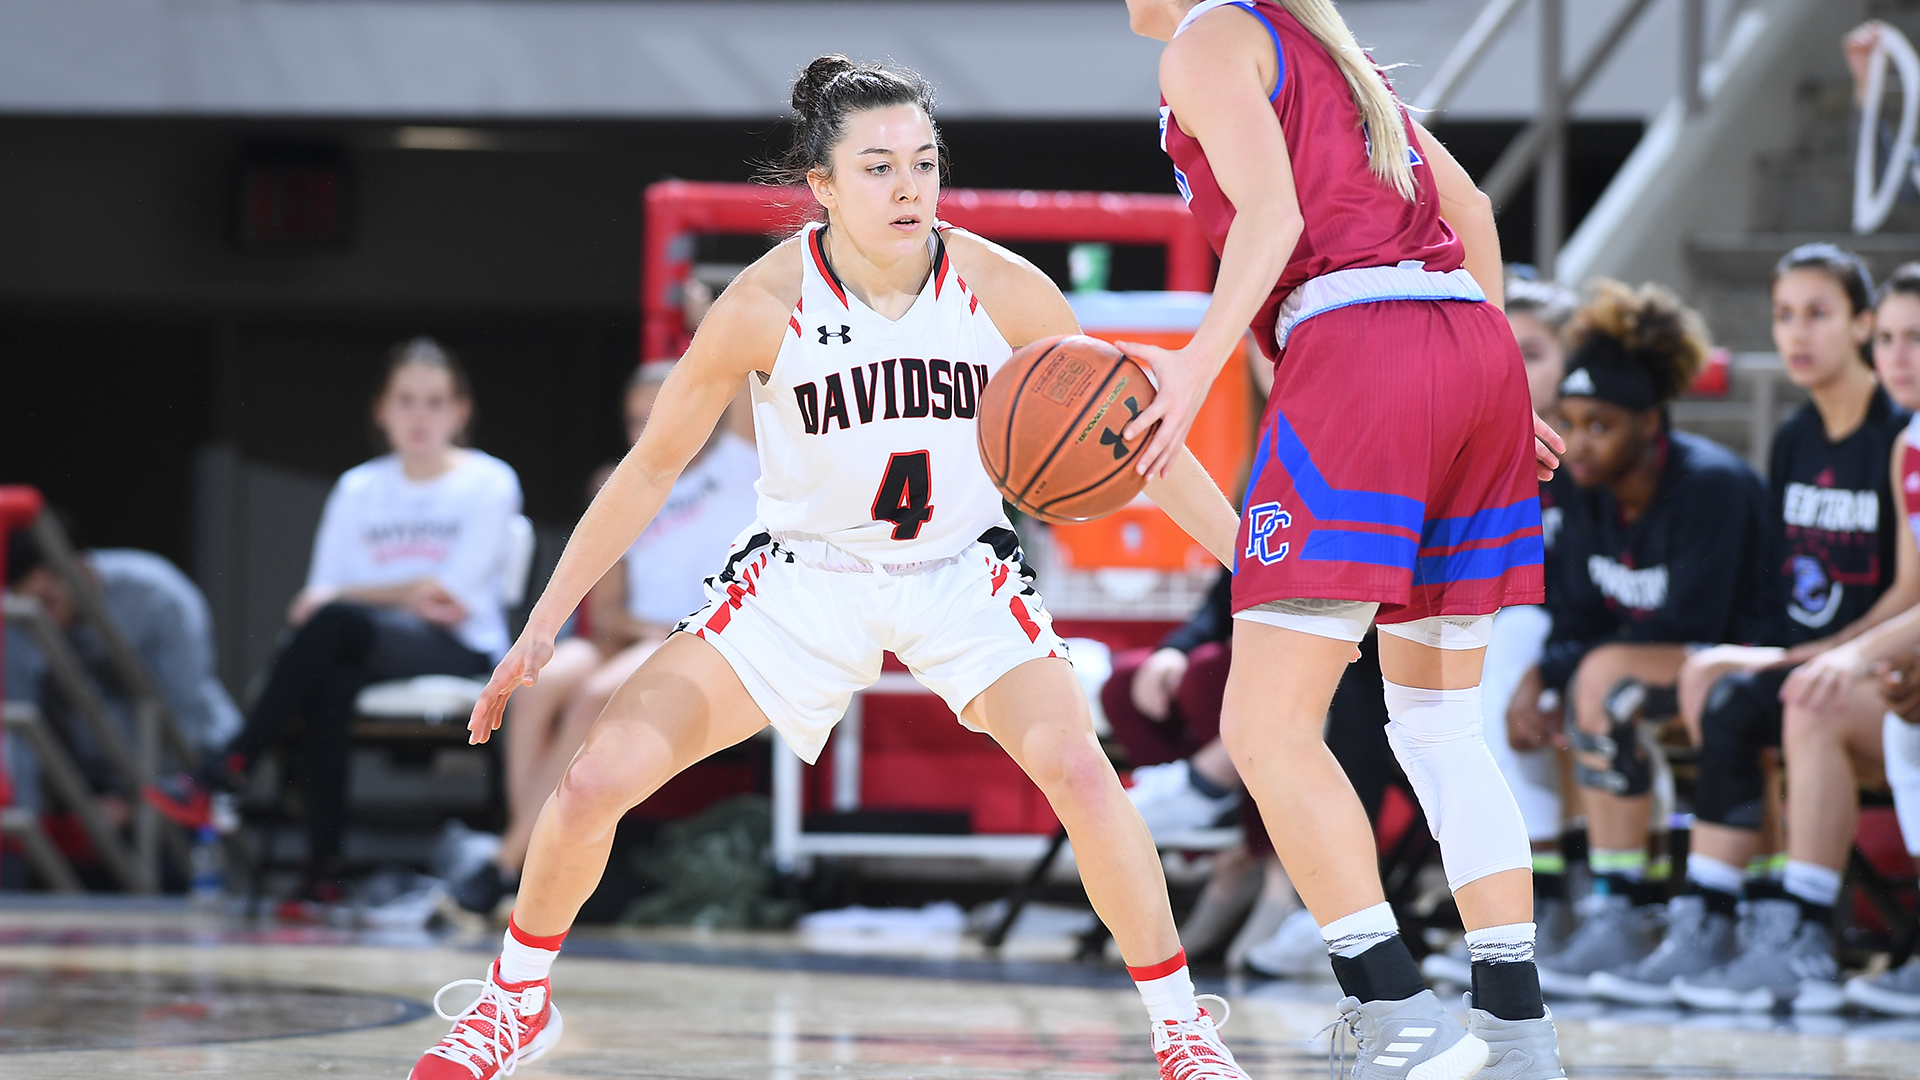 Kelly Fitzgerald Women S Basketball Davidson College Athletics Images, Photos, Reviews